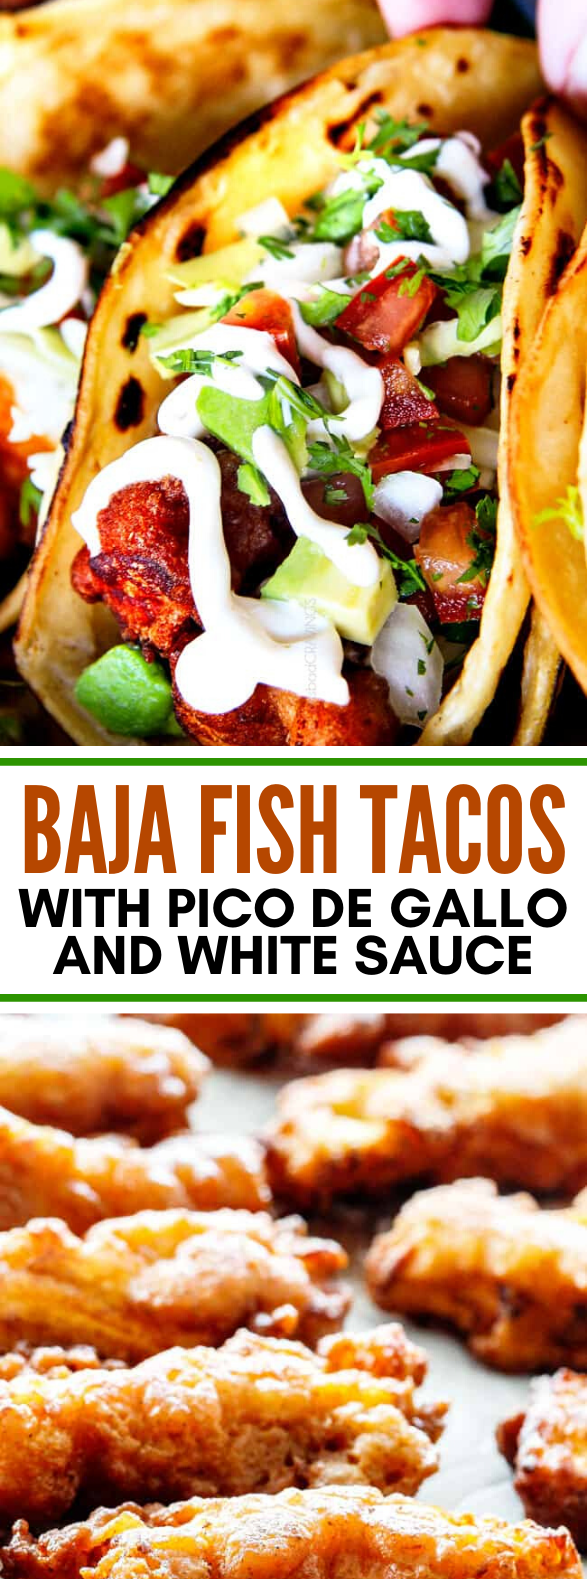 BAJA FISH TACOS WITH PICO DE GALLO AND WHITE SAUCE #lunch #dinner